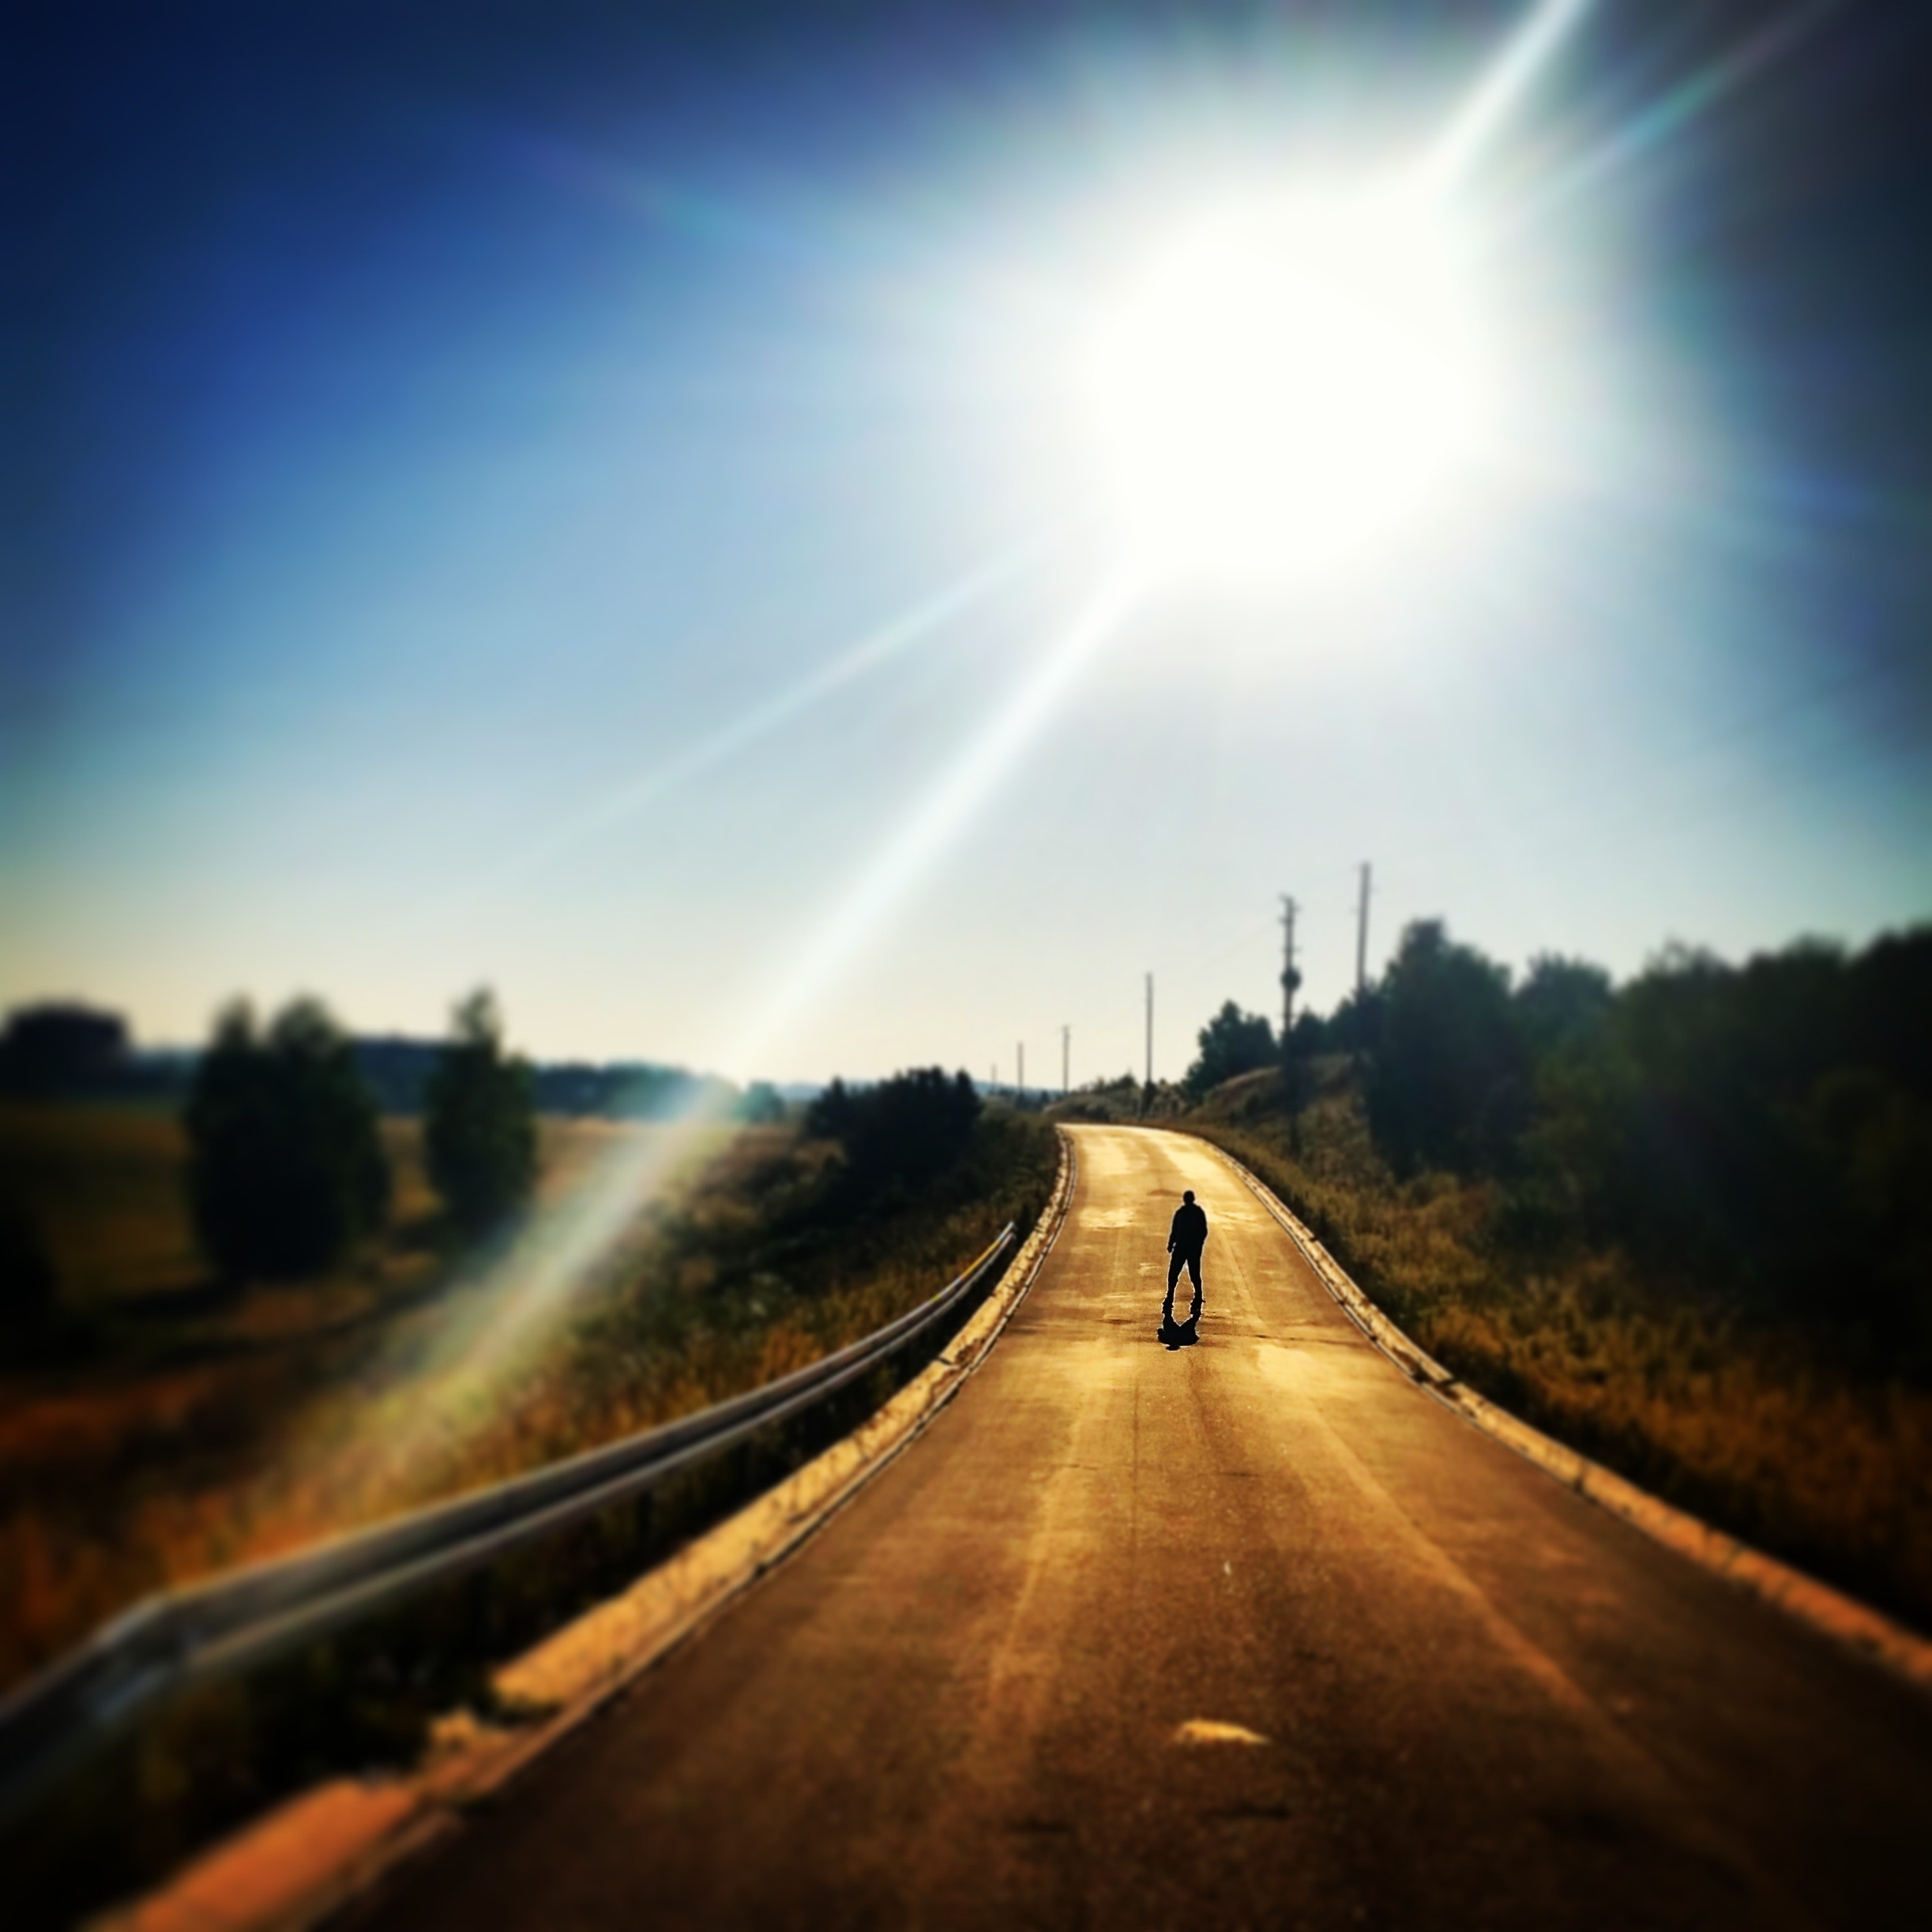 Person Standing on Blacktop Road Under Blue Sky During Daytime, Alone, Man, Road, Street, HQ Photo